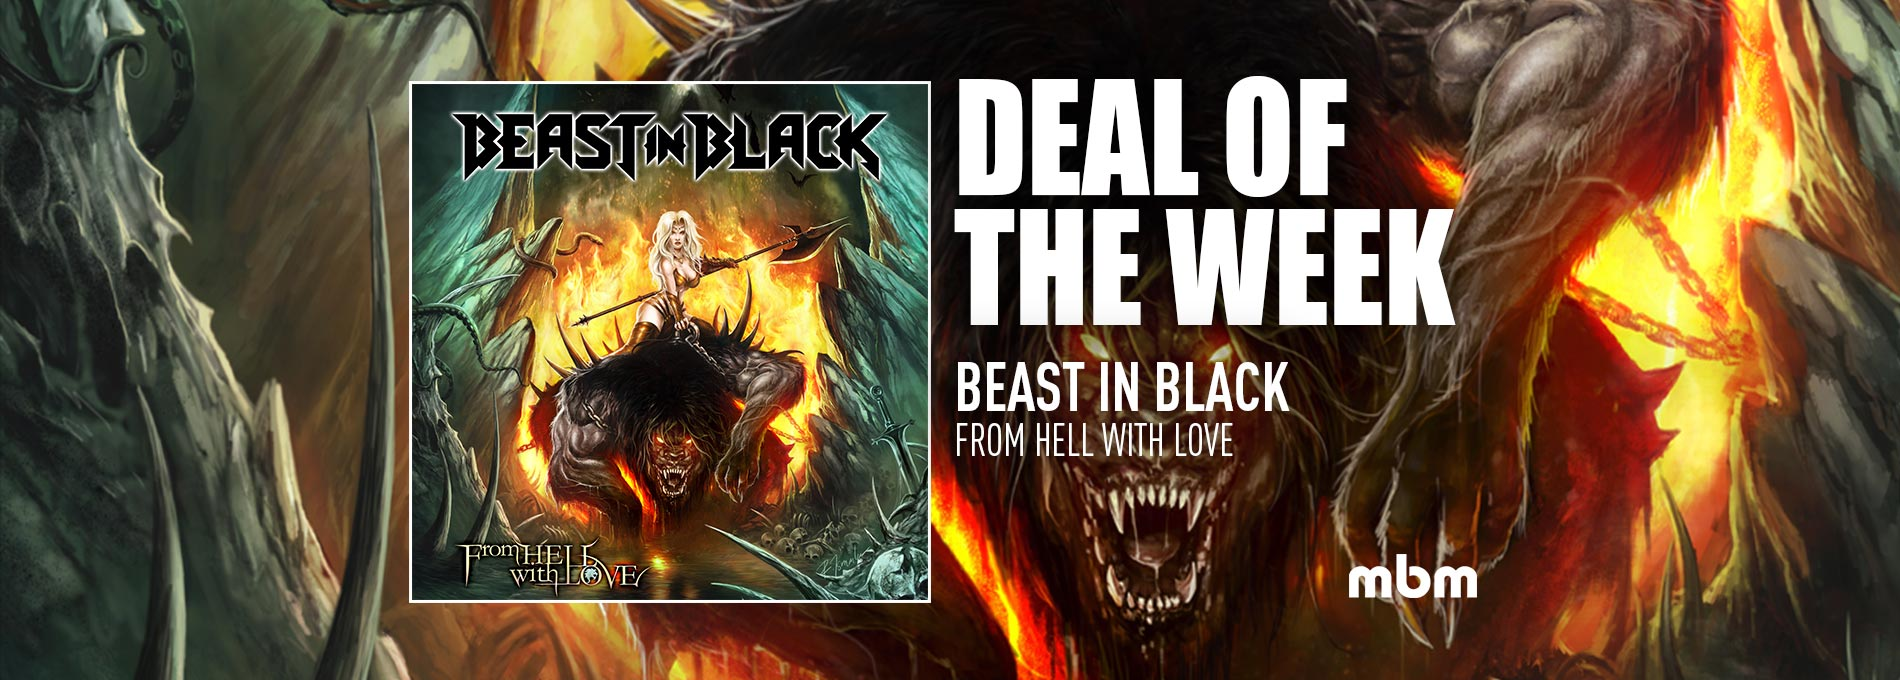 Deal Of The Week: BEAST IN BLACK - From Hell With Love